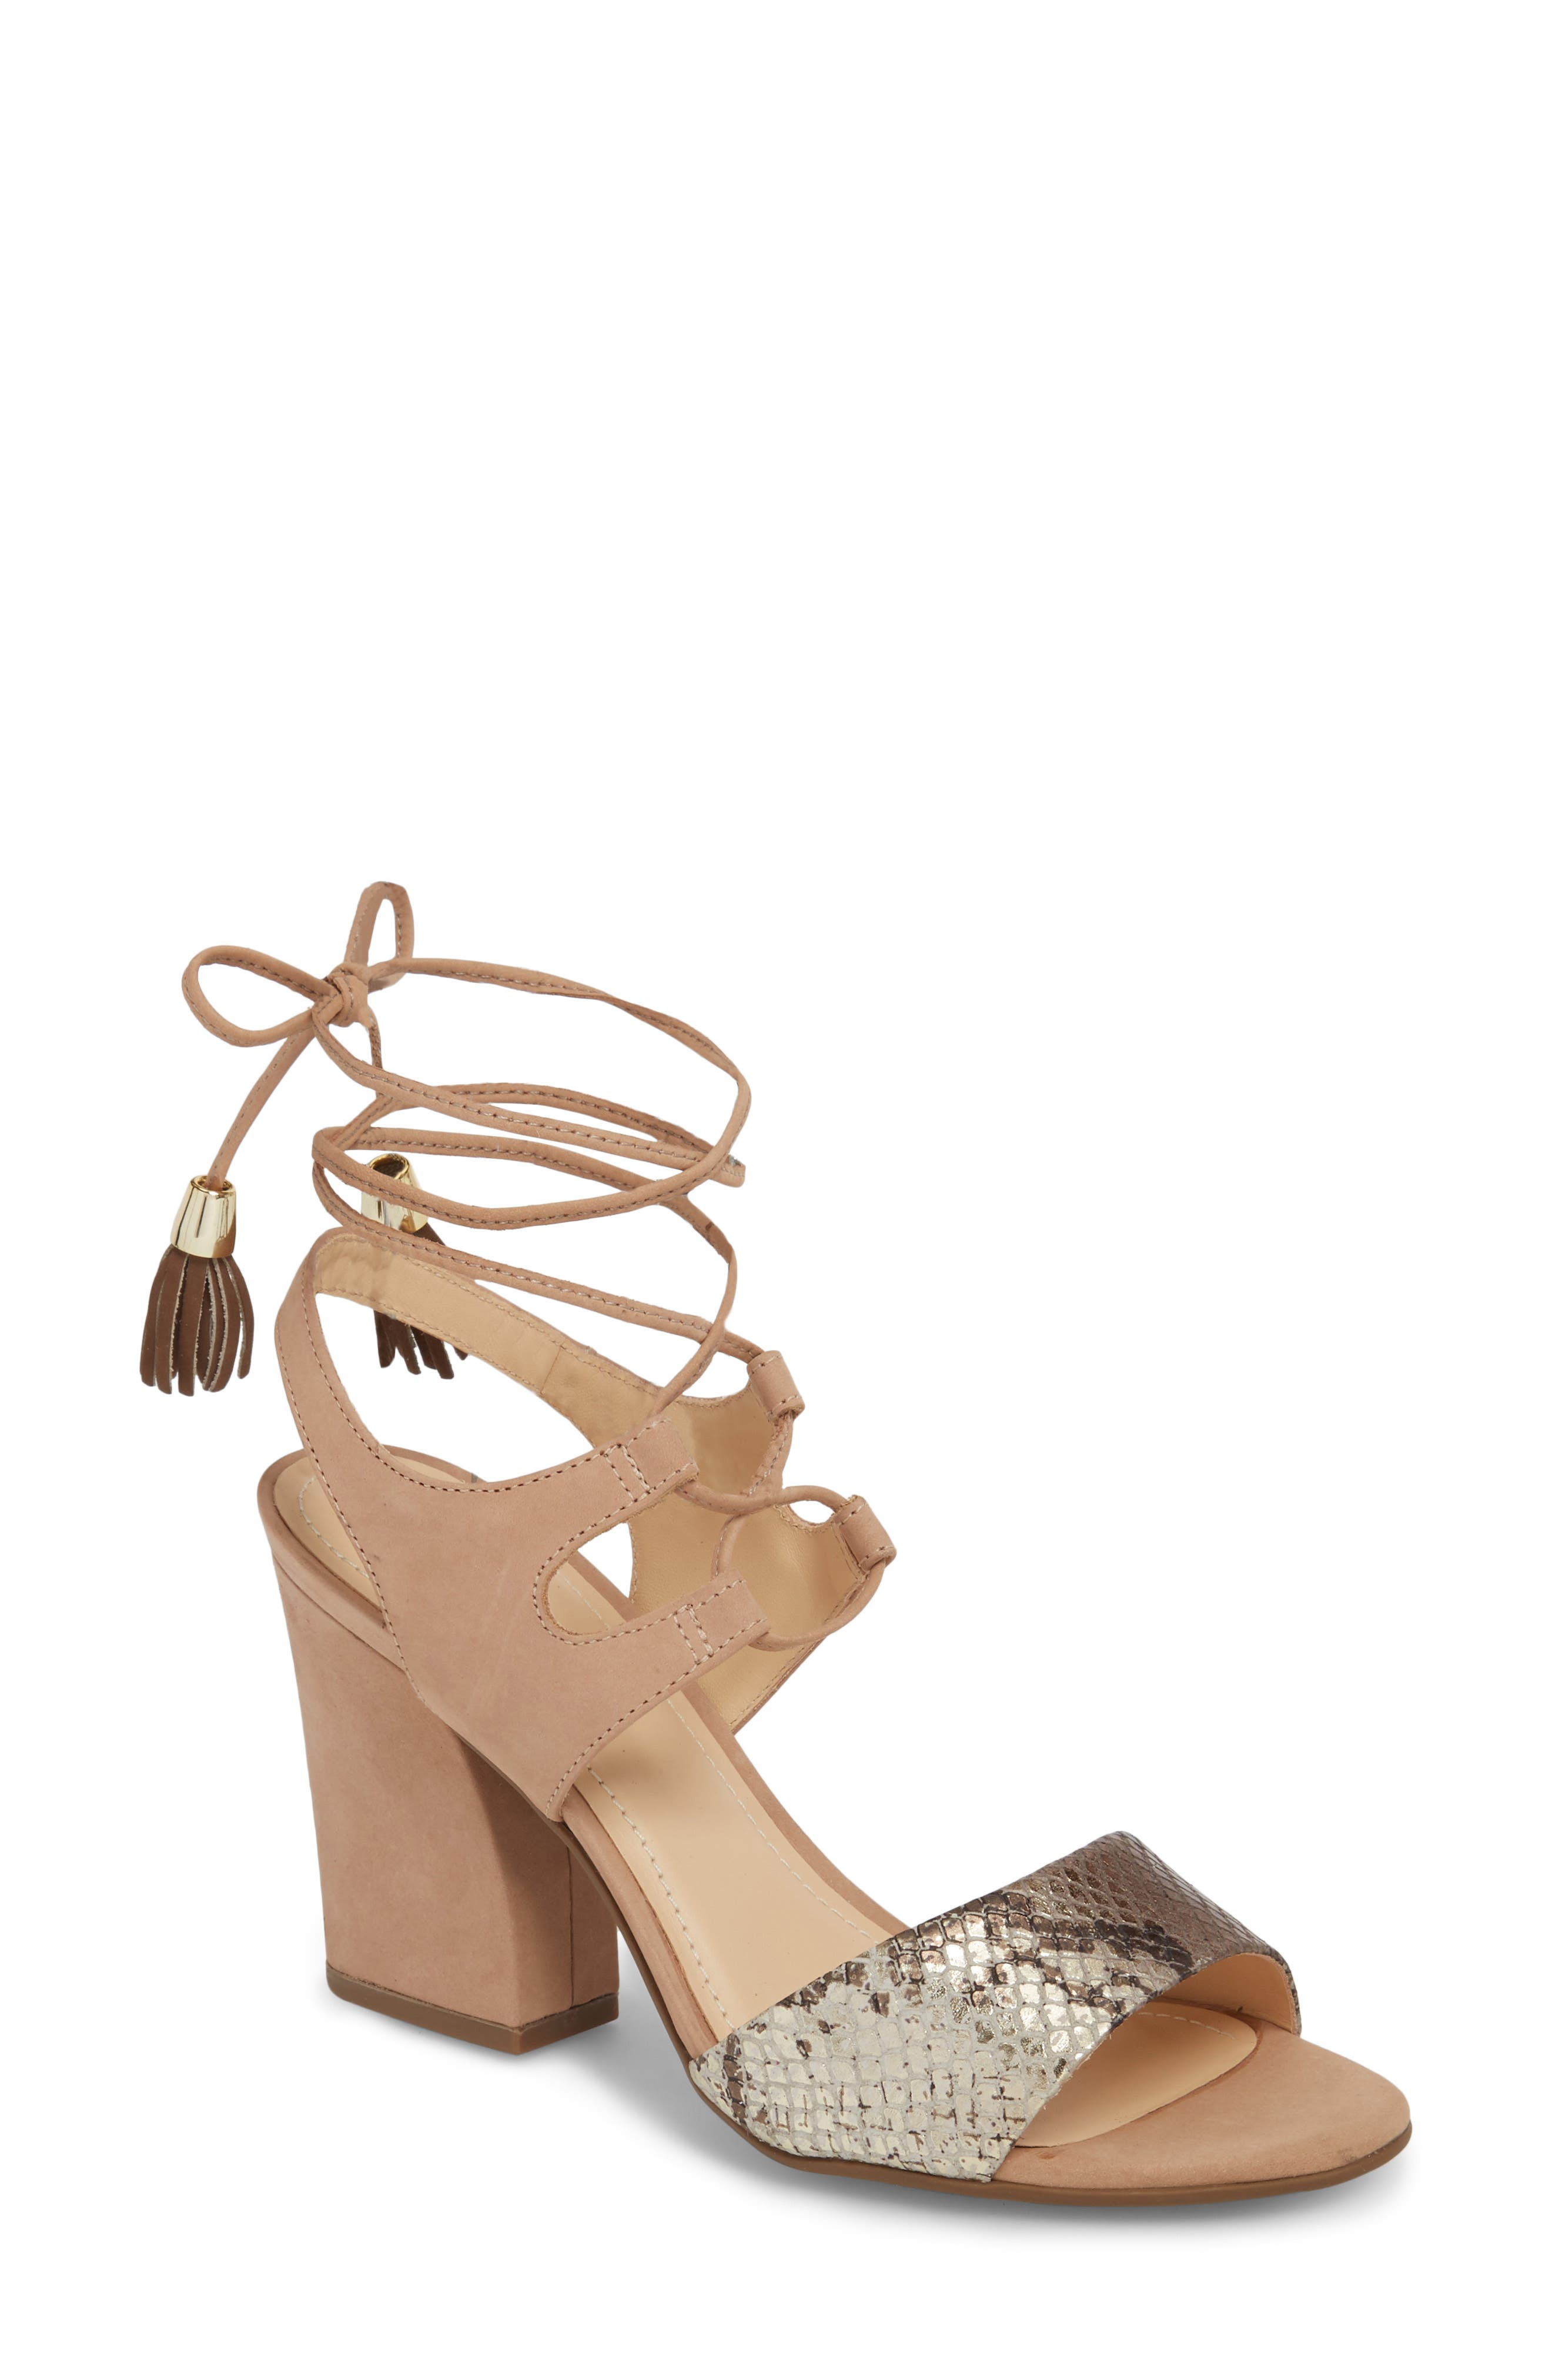 Kaira Ankle Wrap Sandal,                         Main,                         color, Snake Print Leather